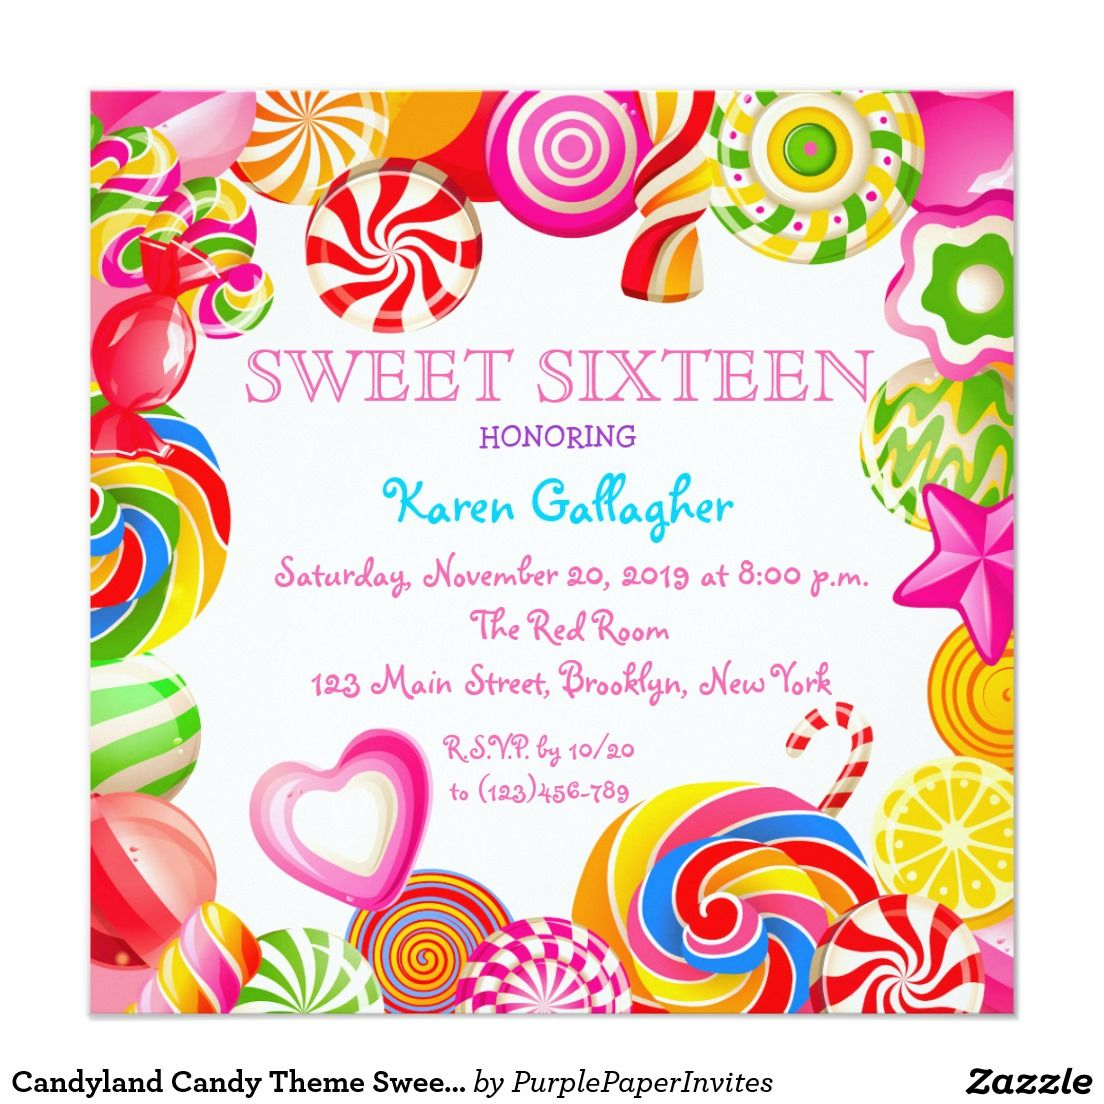 candyland candy theme sweet 16 invitation in 2018 sweet 16